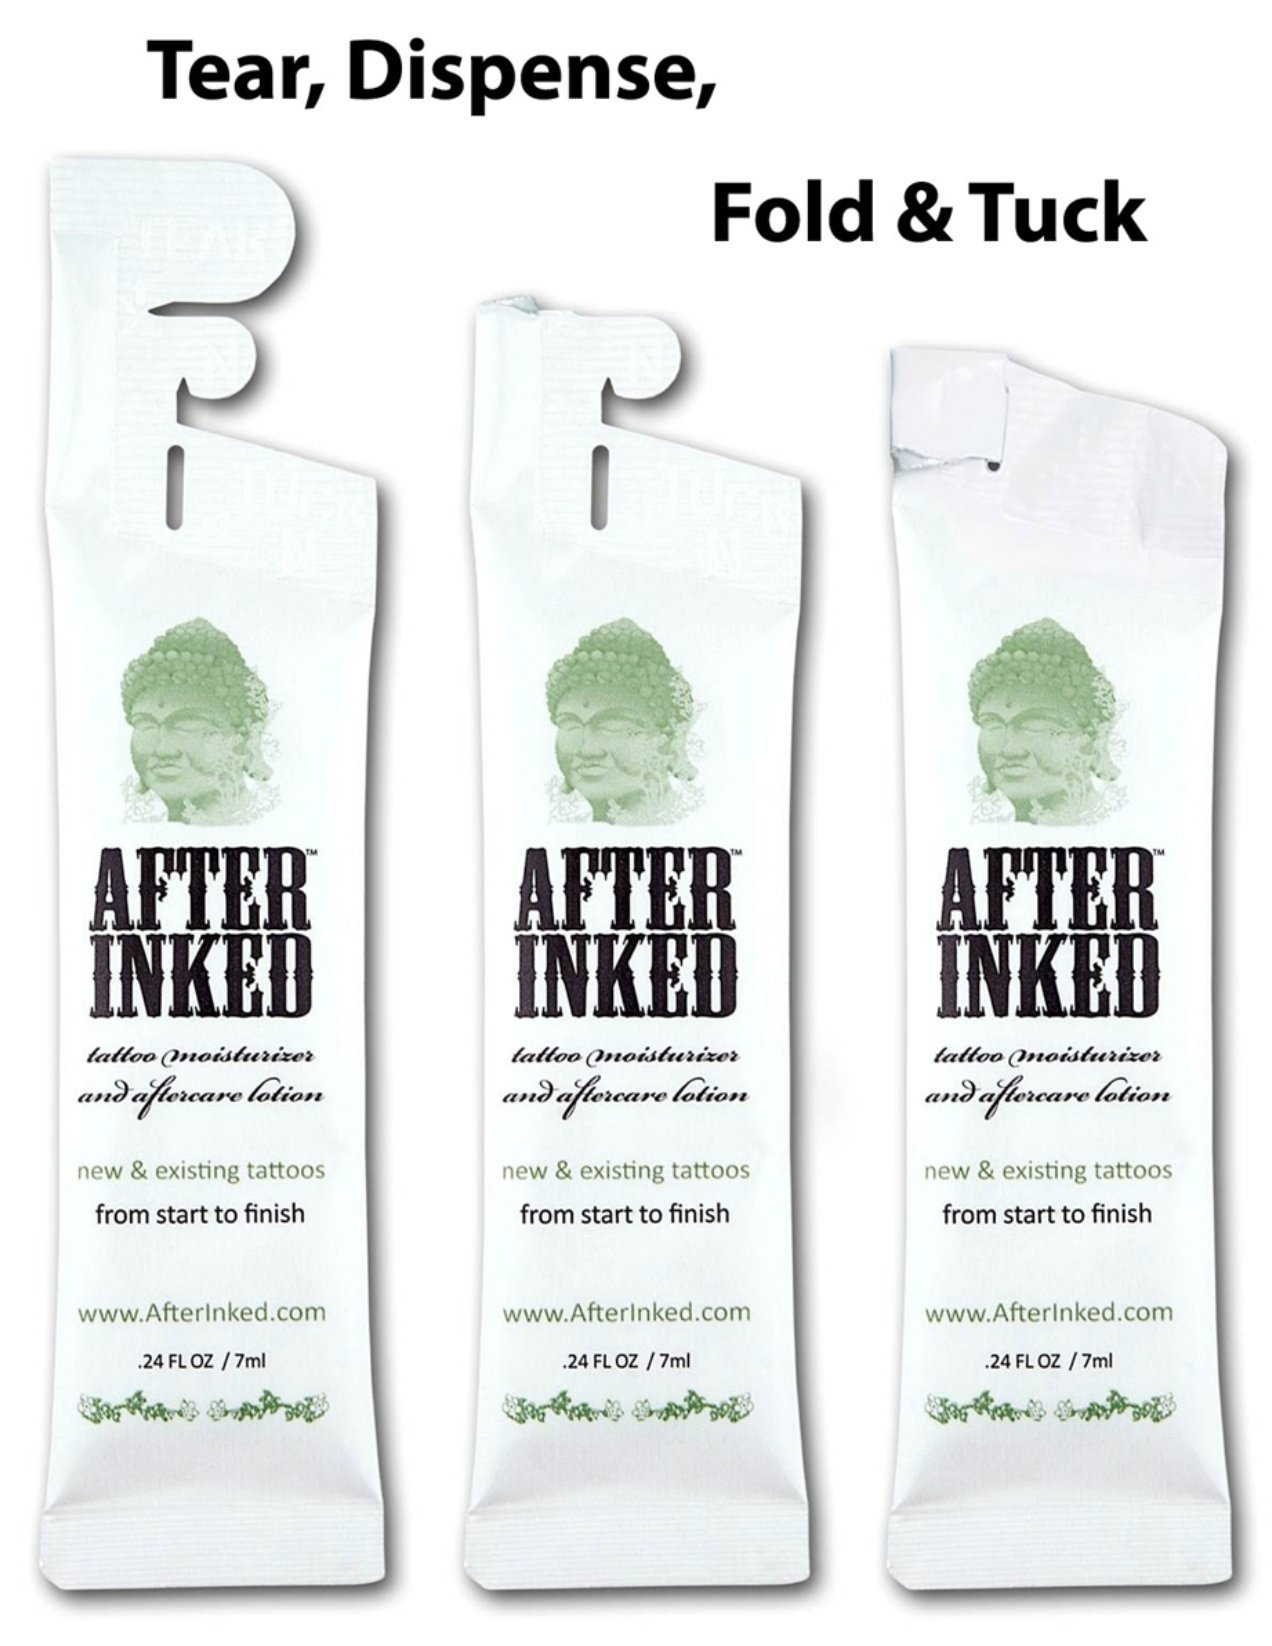 After Inked Tattoo Moisturizer & Aftercare Lotion Pillow Packs dispensers (50-pack)